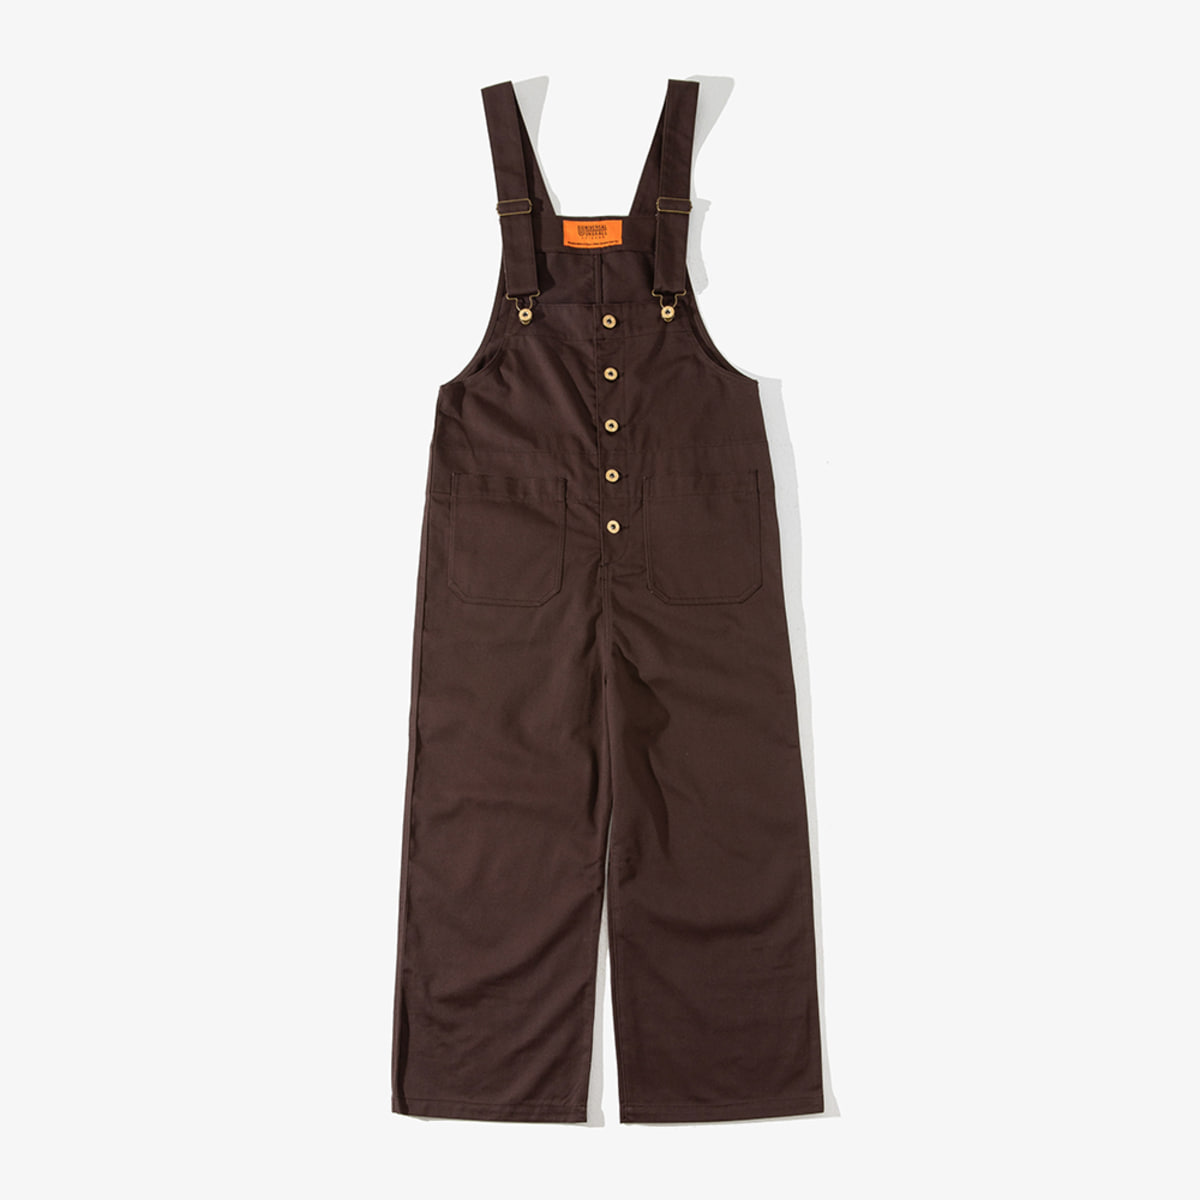 WOMENS BASIC OVERALL DARK BROWN